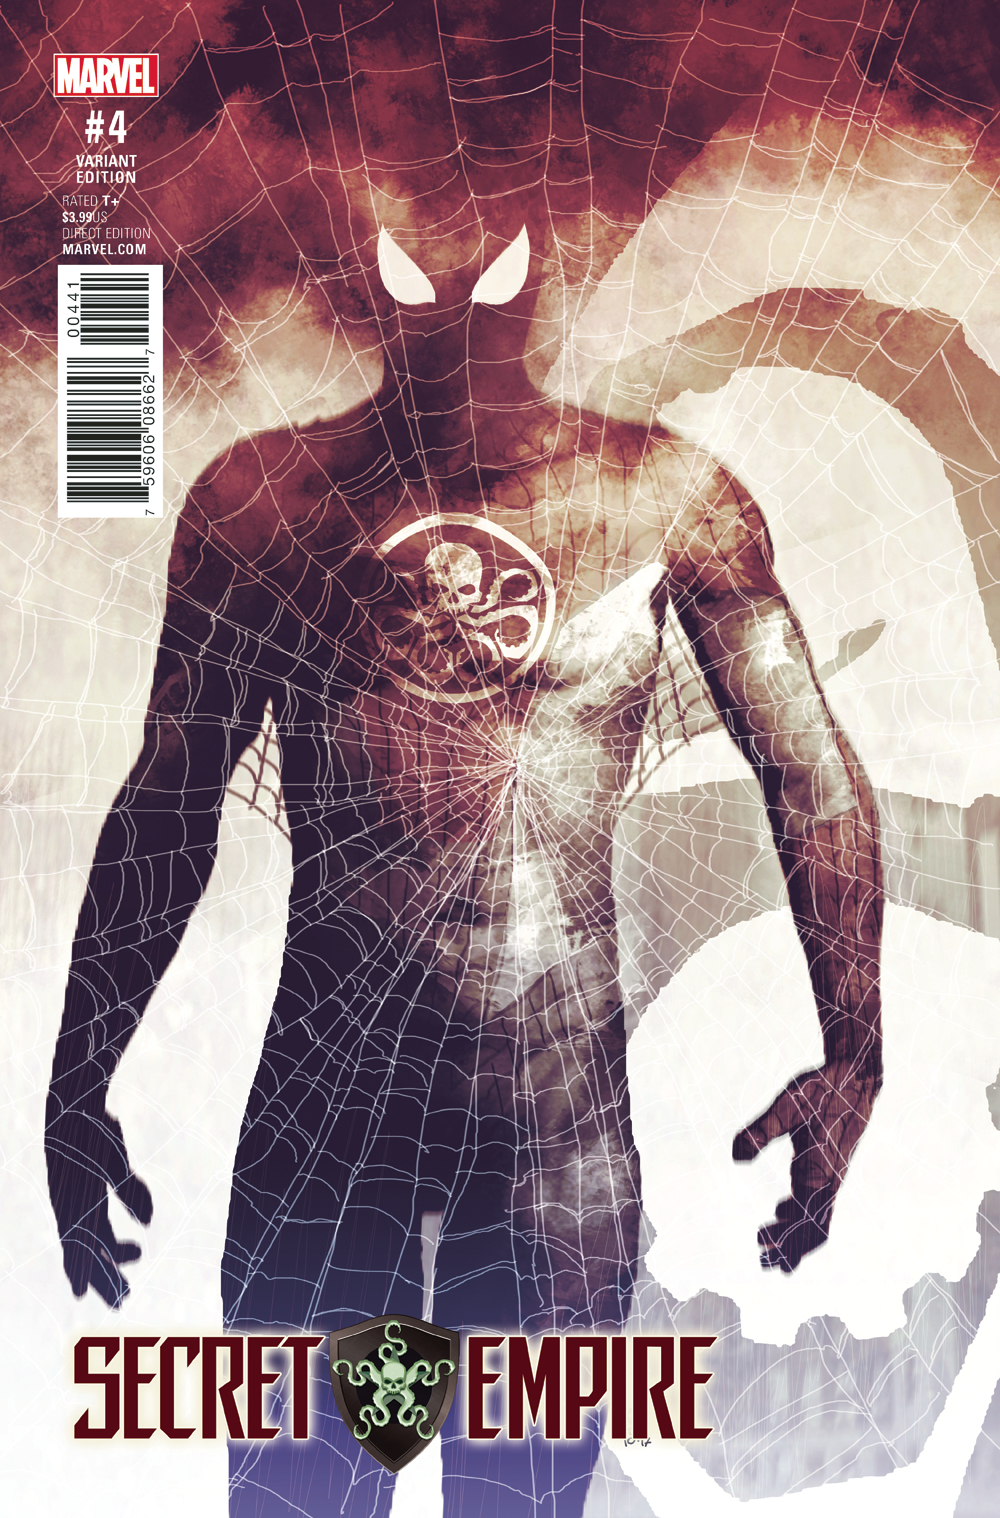 SECRET EMPIRE #4 (OF 10) SORRENTINO HYDRA HEROES VAR